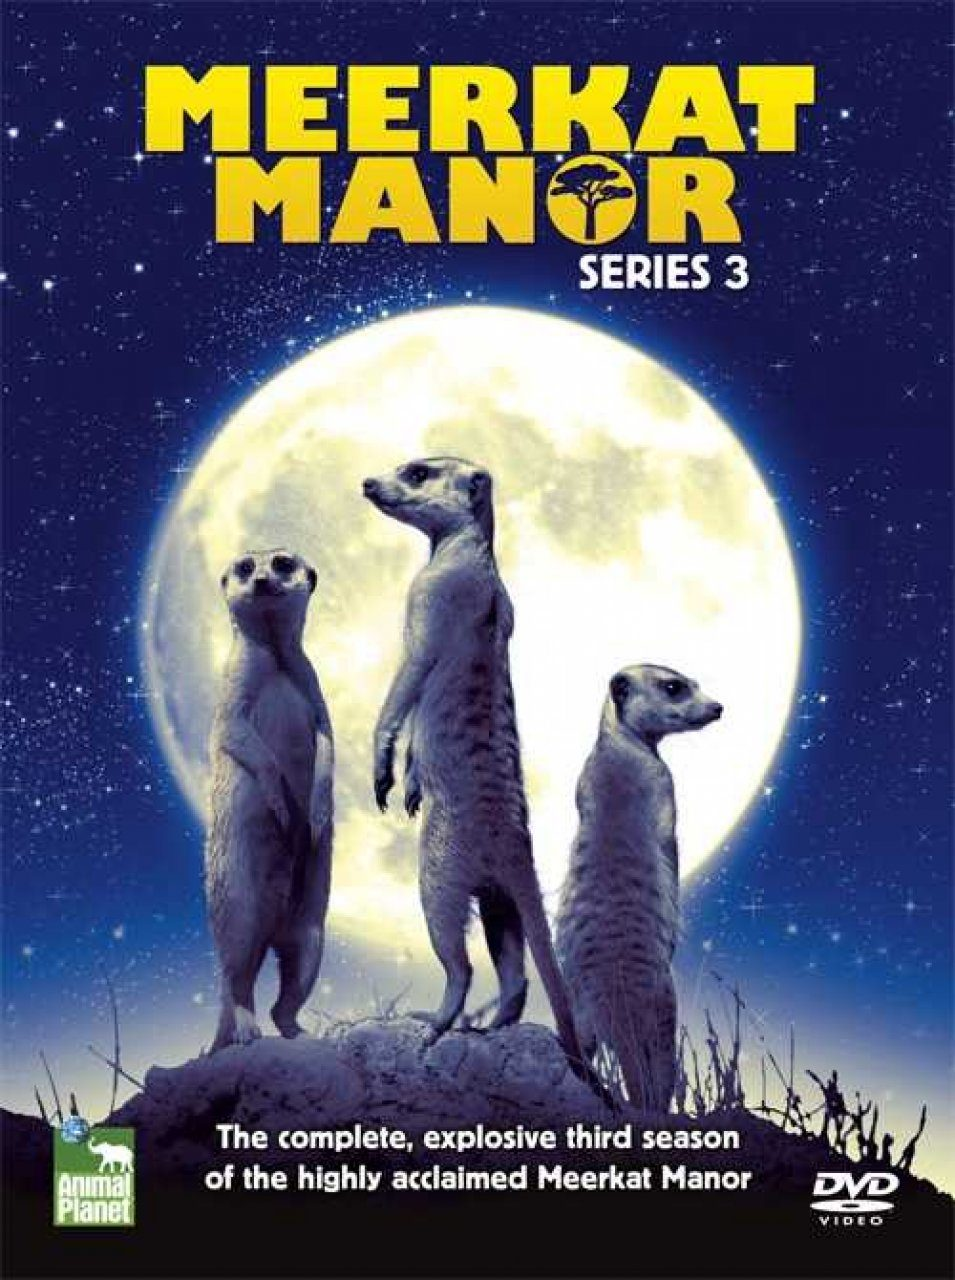 Meerkat Manor - DVD: Series 3 (Region 2)